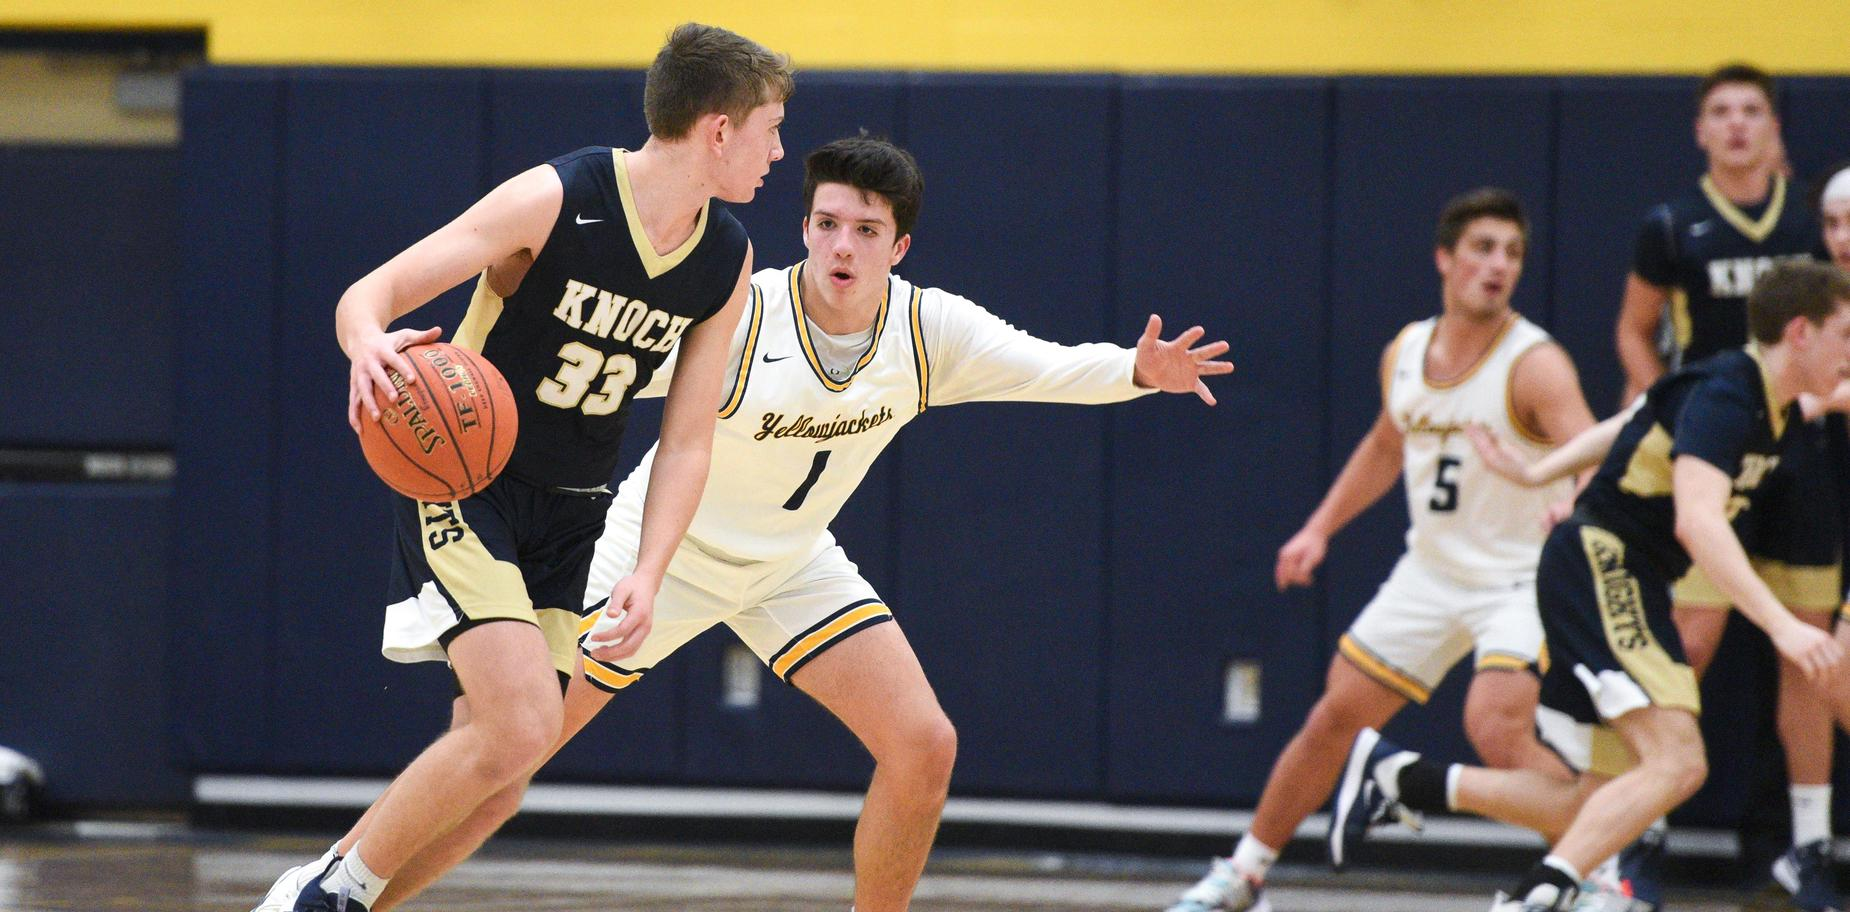 Knoch Boys' Basketball player in game